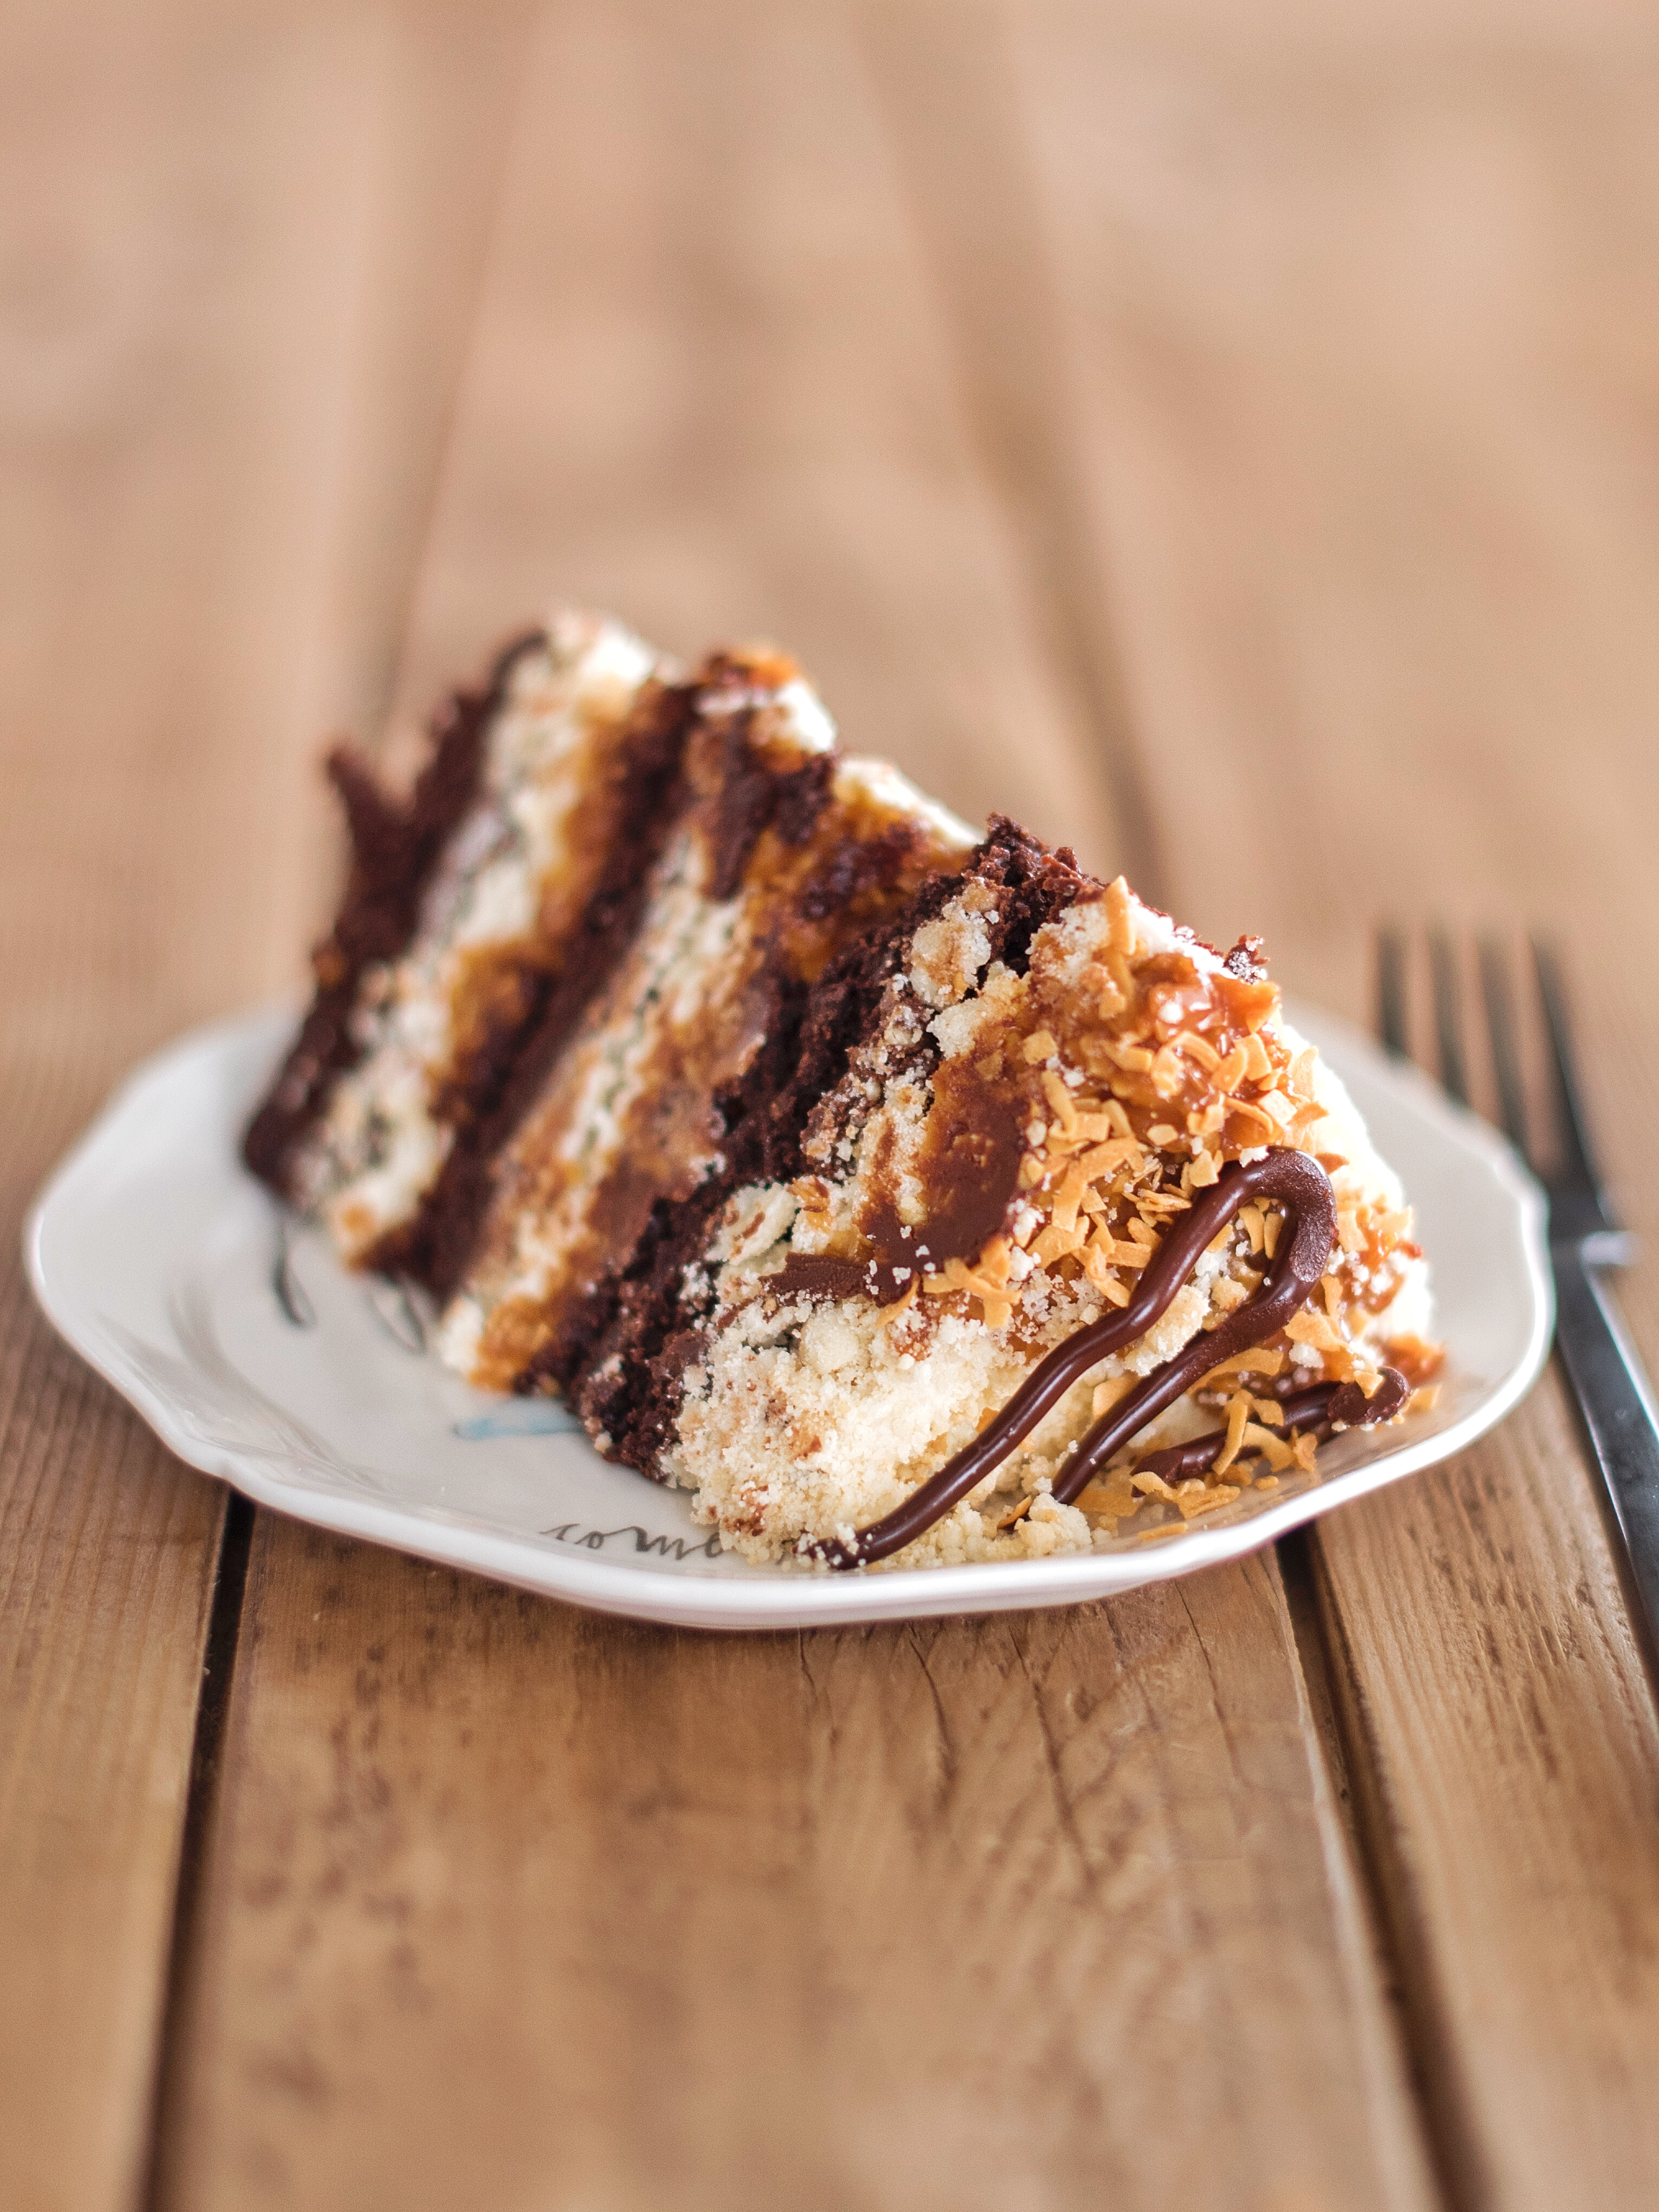 Samoa Girl Scout Cookie Cake: delicious dark chocolate cake, caramel coconut filling, shortbread crumbs and shortbread buttercream #cakebycourtney #samoa #girlscoutcookiecake